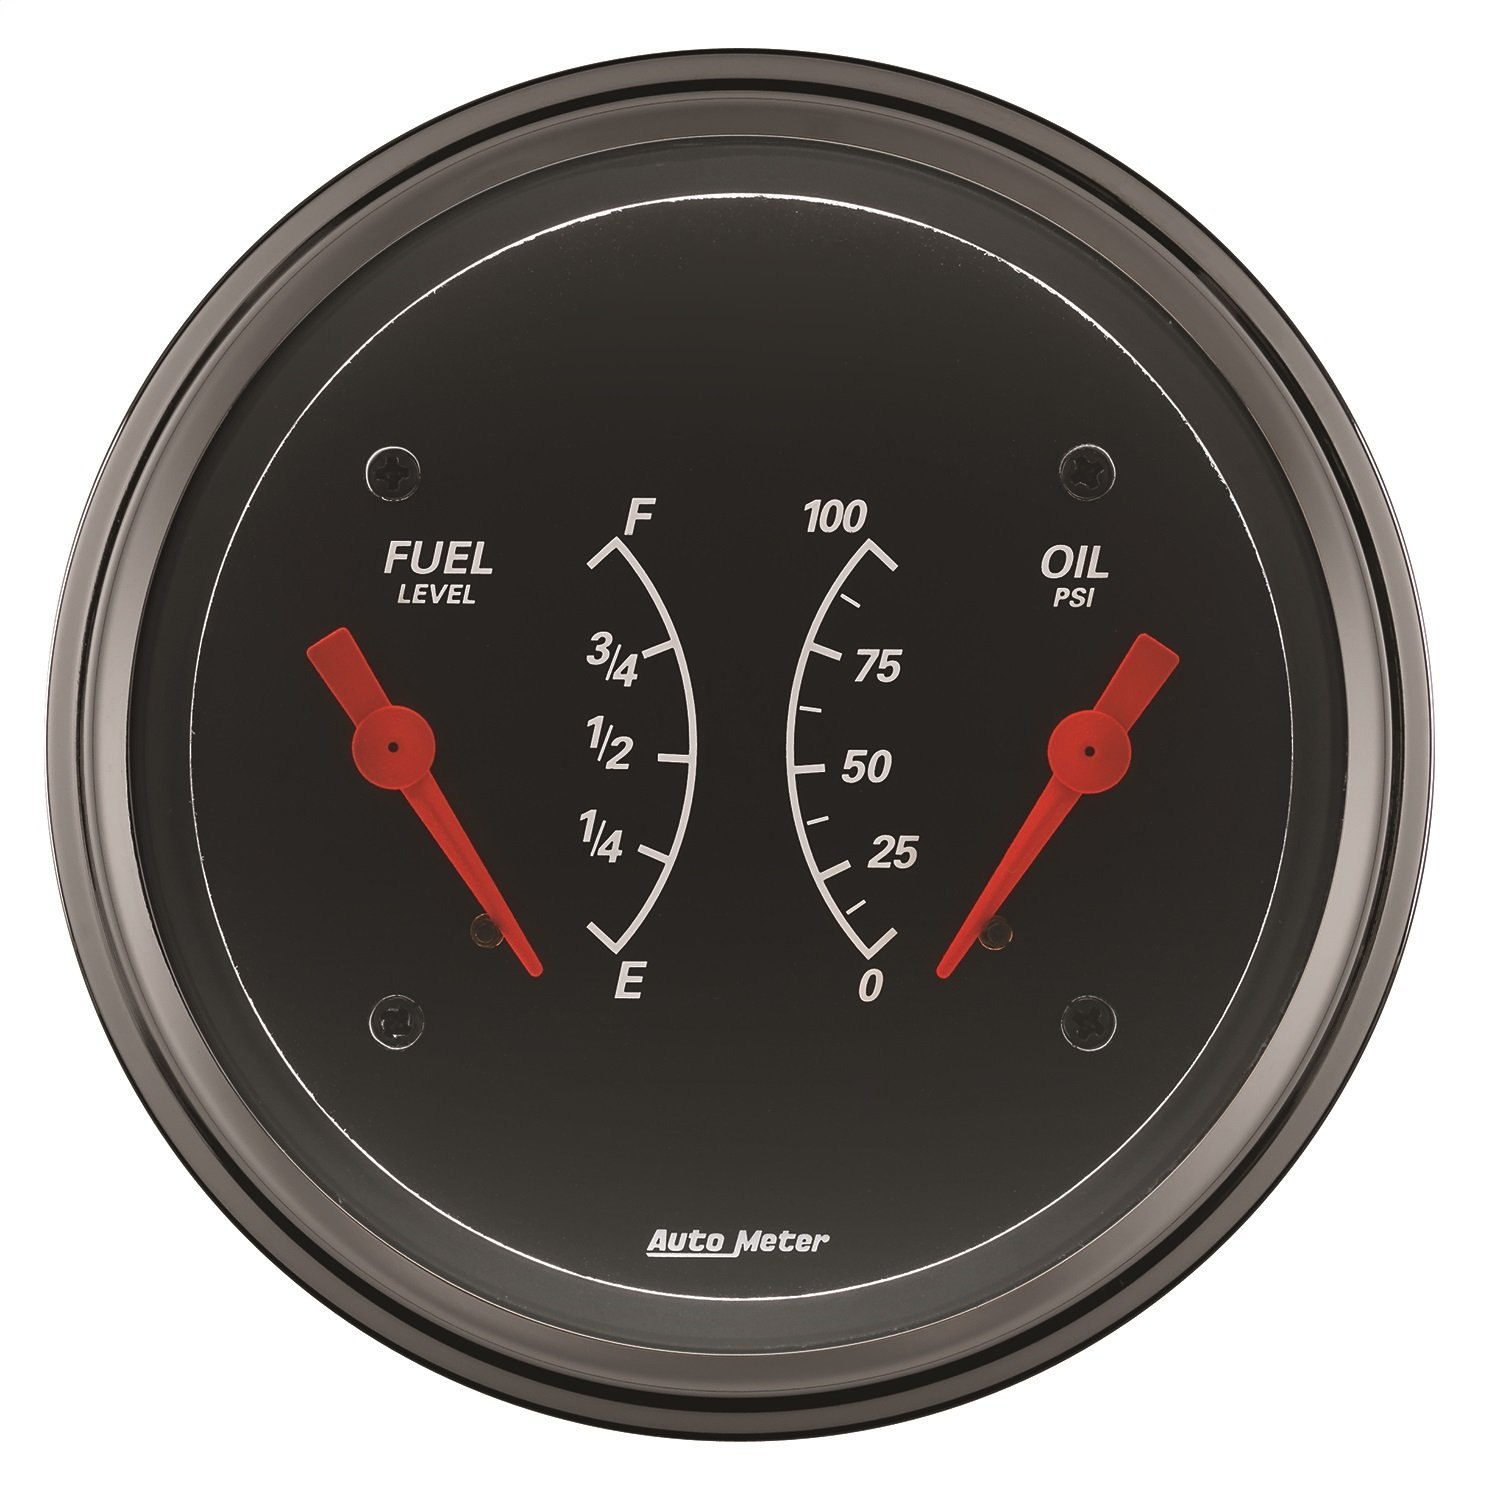 Auto Meter 1434 Designer Black Oil/Fuel Dual Gauge